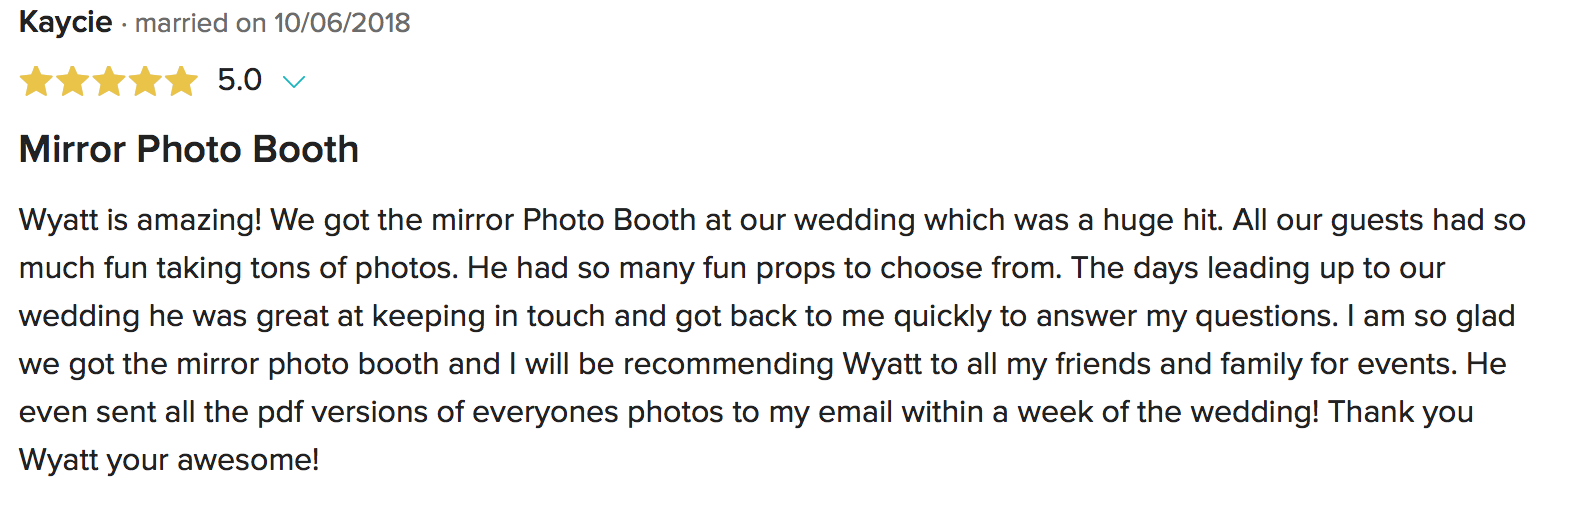 Mirror Booth Wedding Photo Boot review